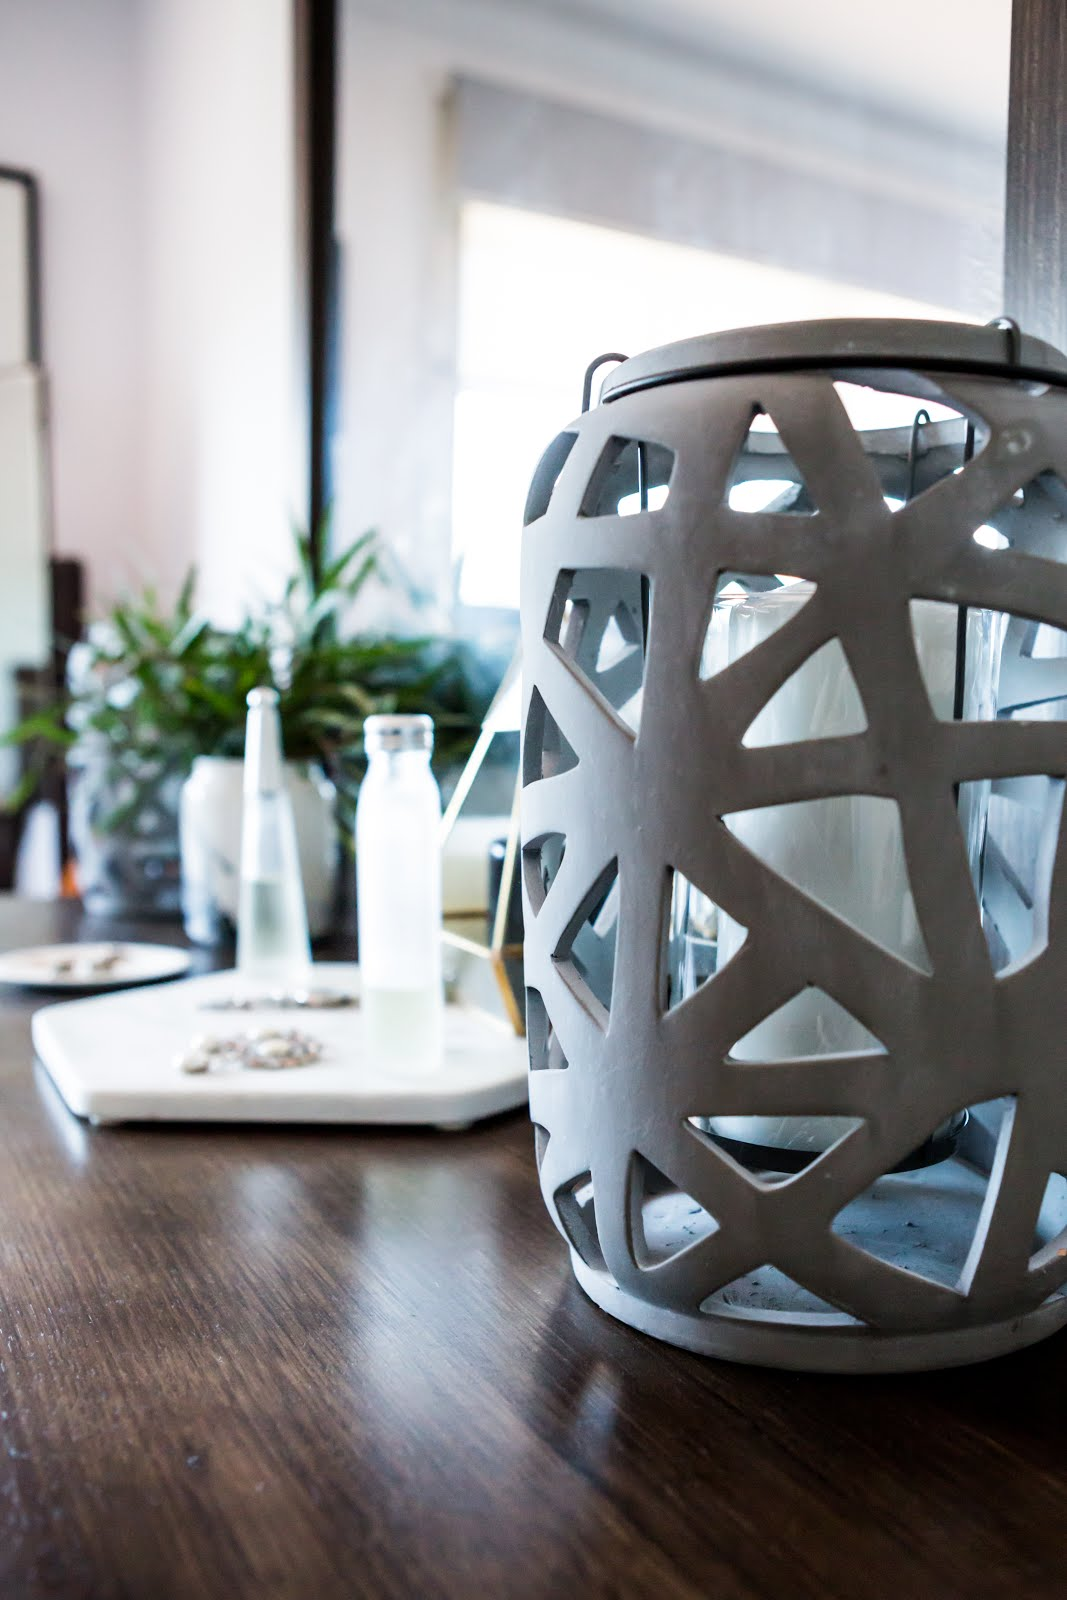 La Maison Jolie  How To Decorate With Lanterns    Indoors  Like with any other accessories  when styling with lanterns indoors  there  are a few design principles to keep in mind  Here are some of my tried and  tested